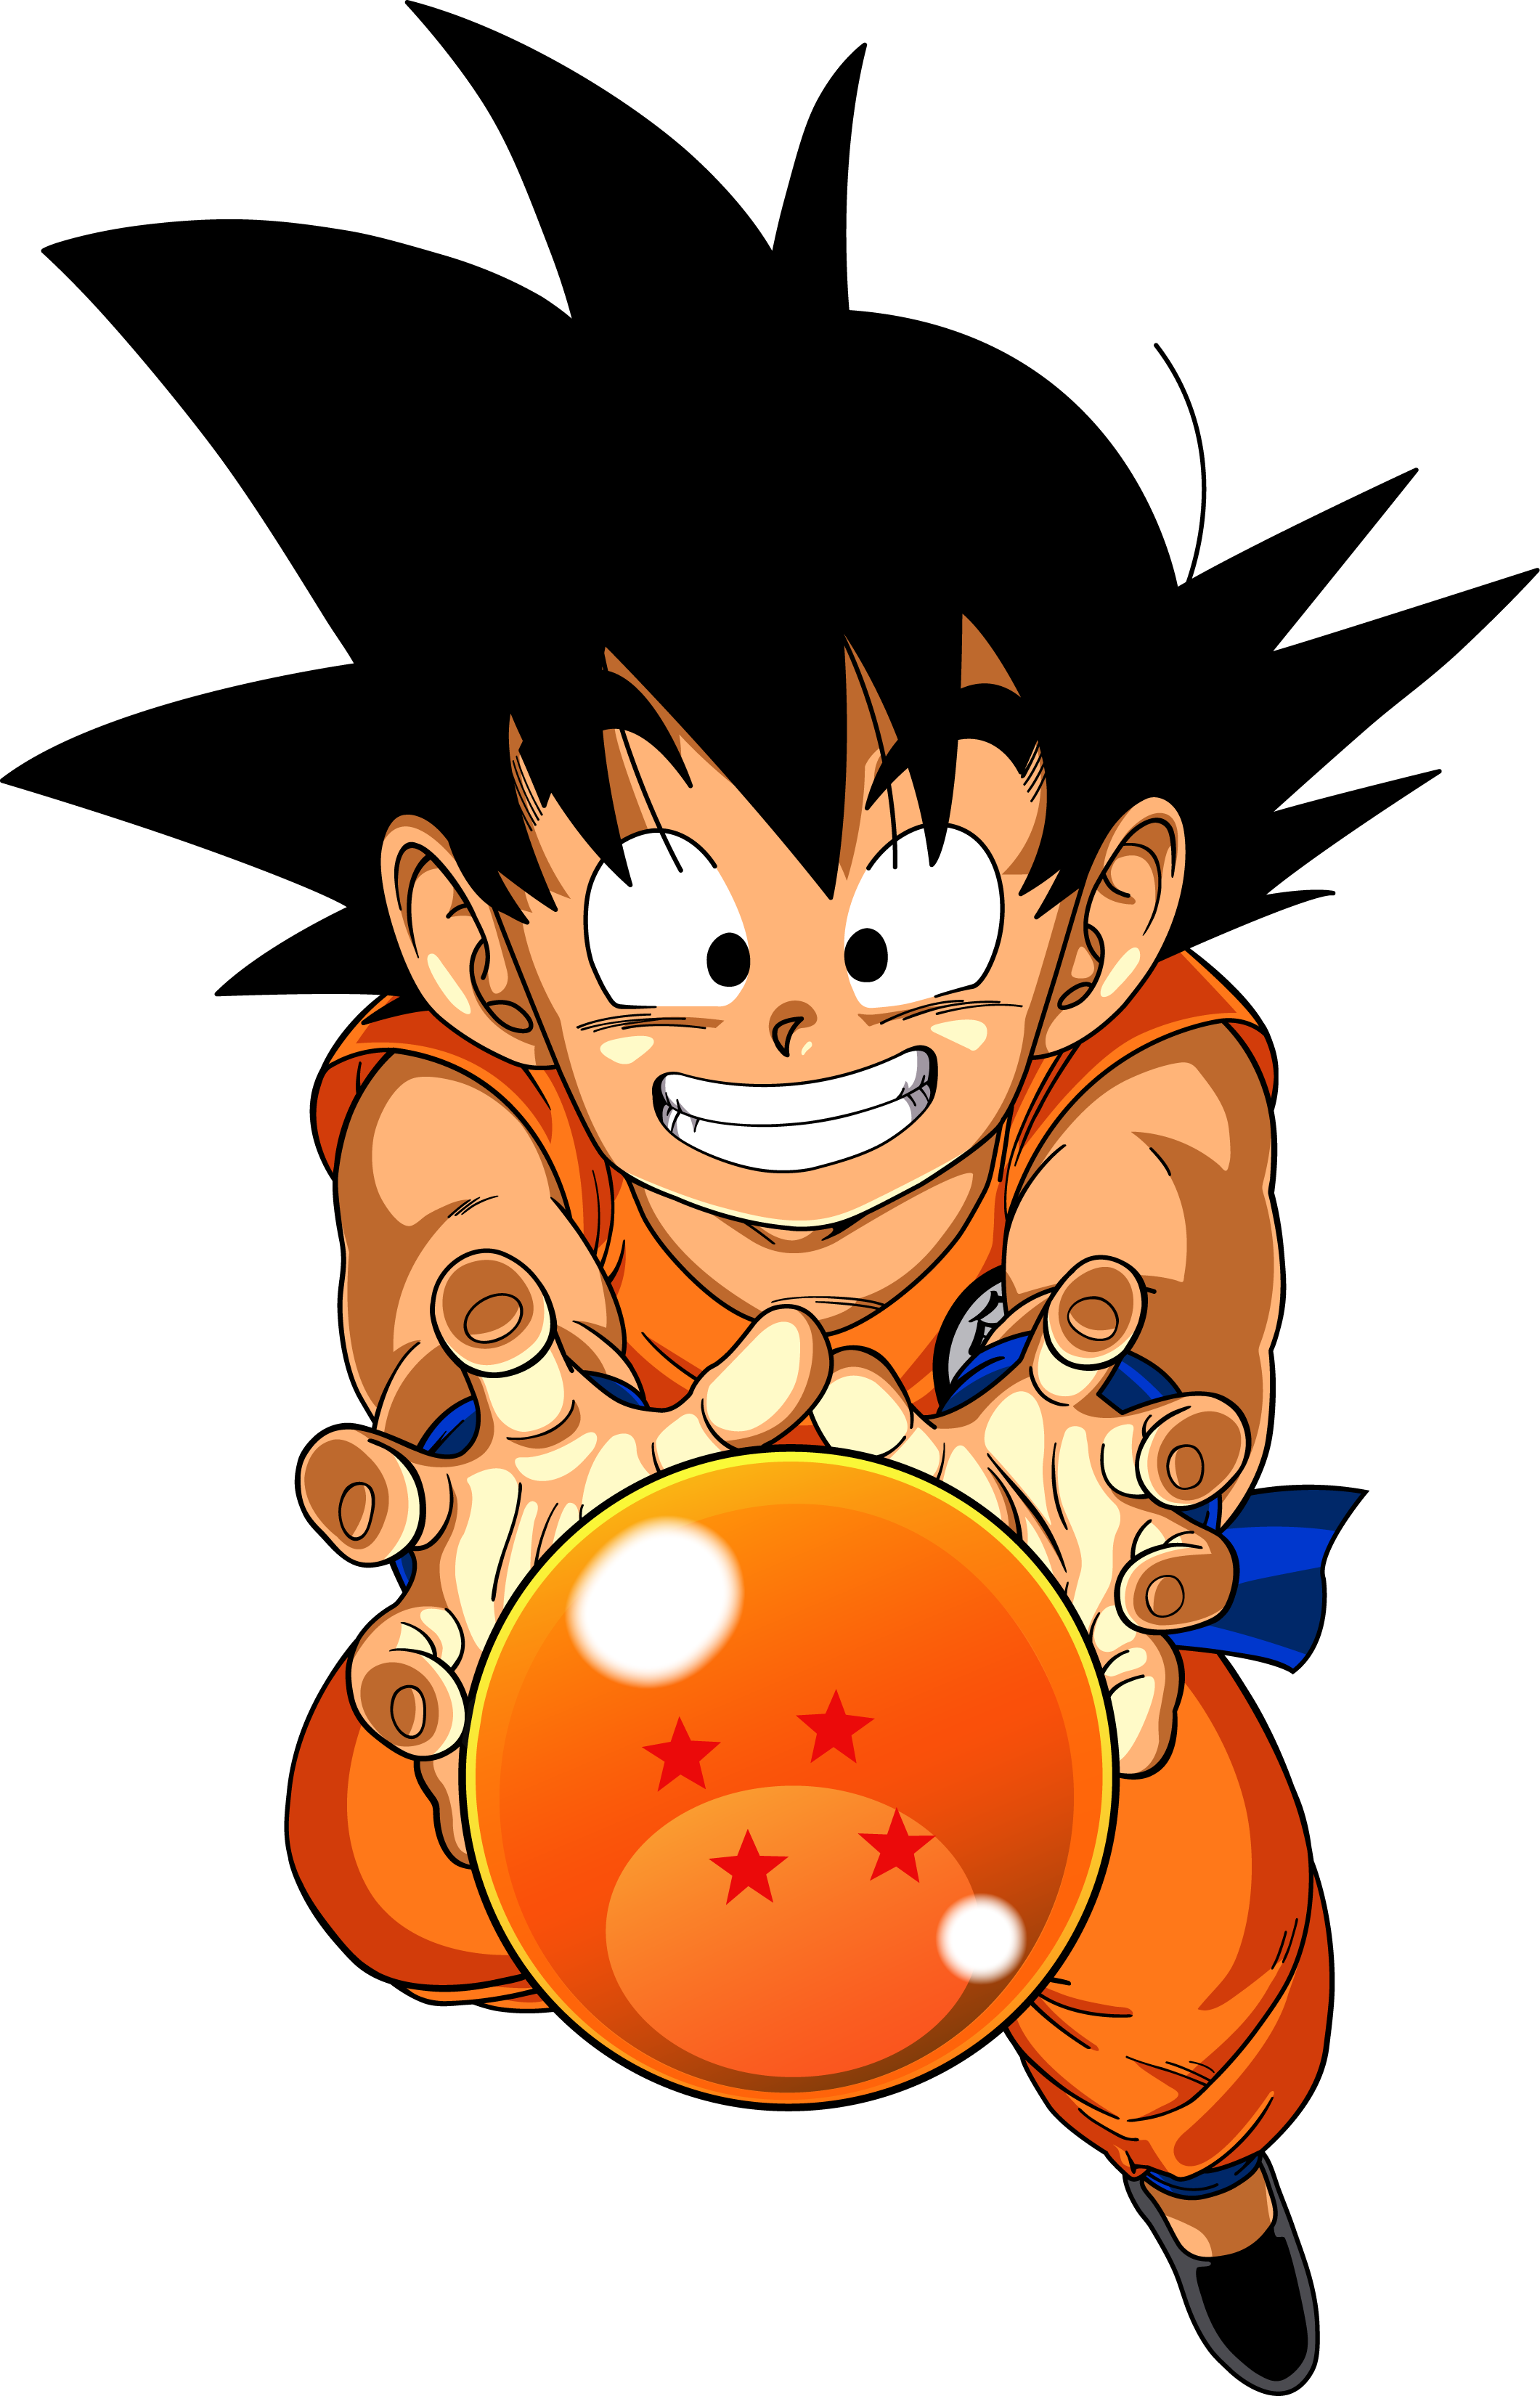 Dragon ball png. Dragonball kid goku by